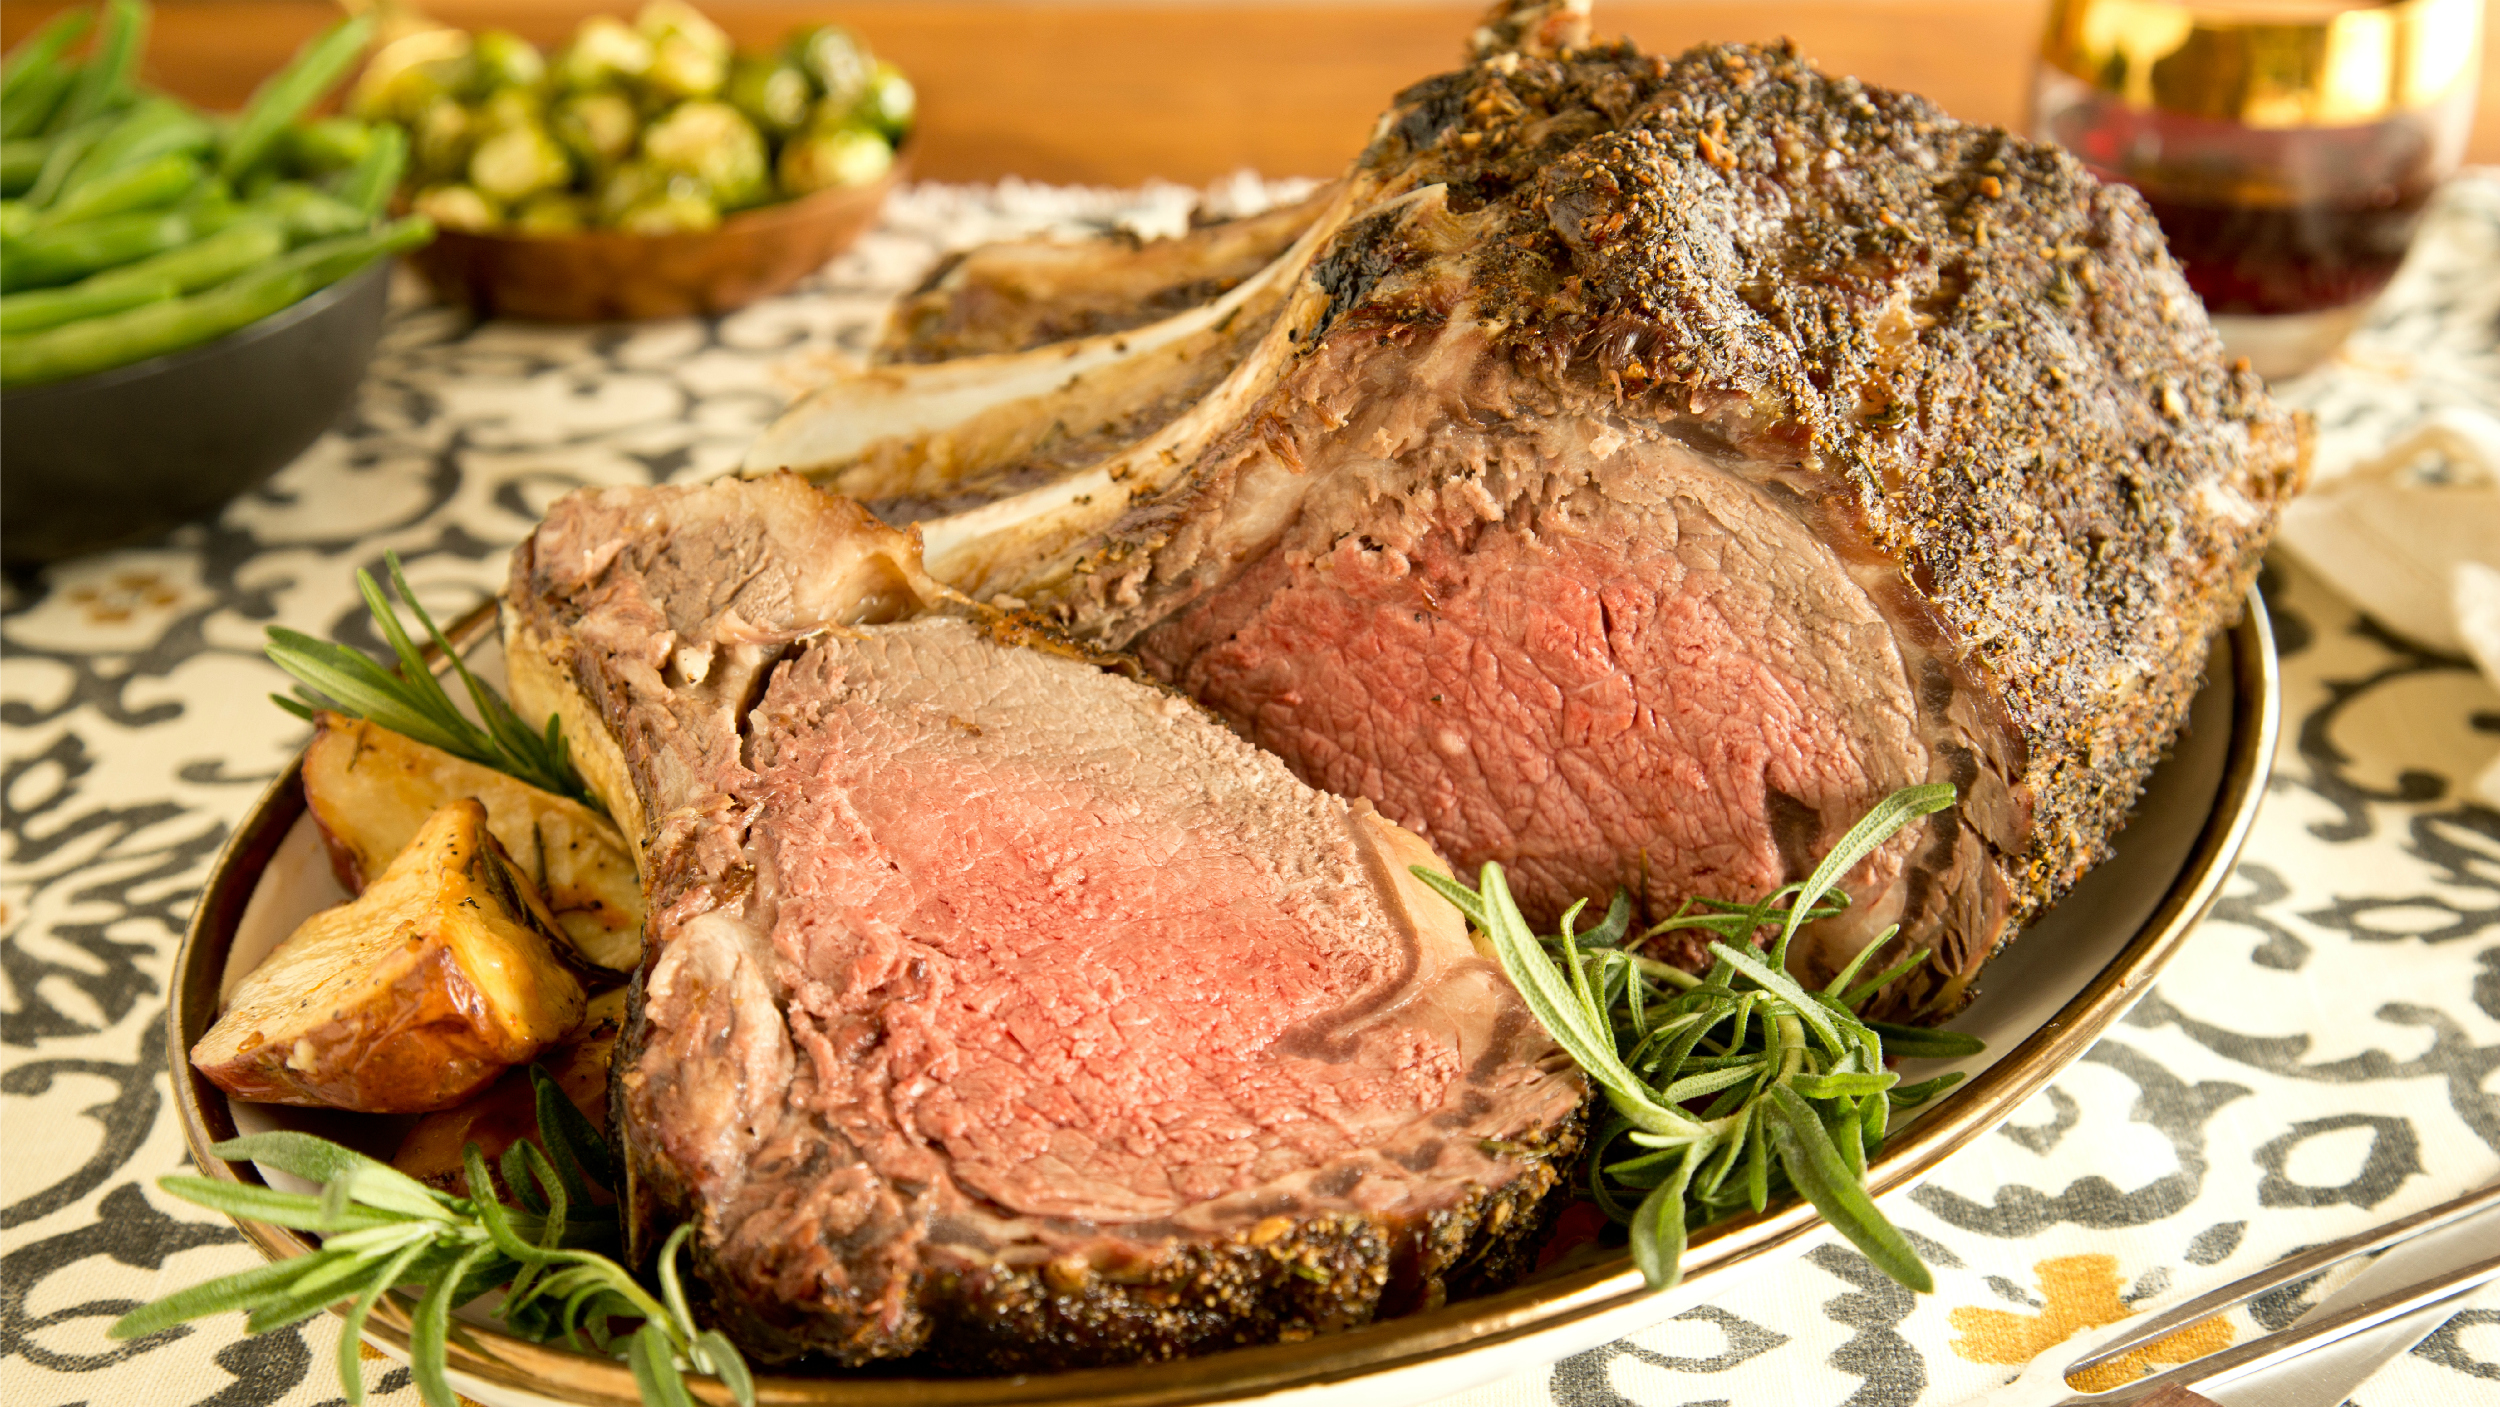 How long to cook prime rib per pound at 250 degrees